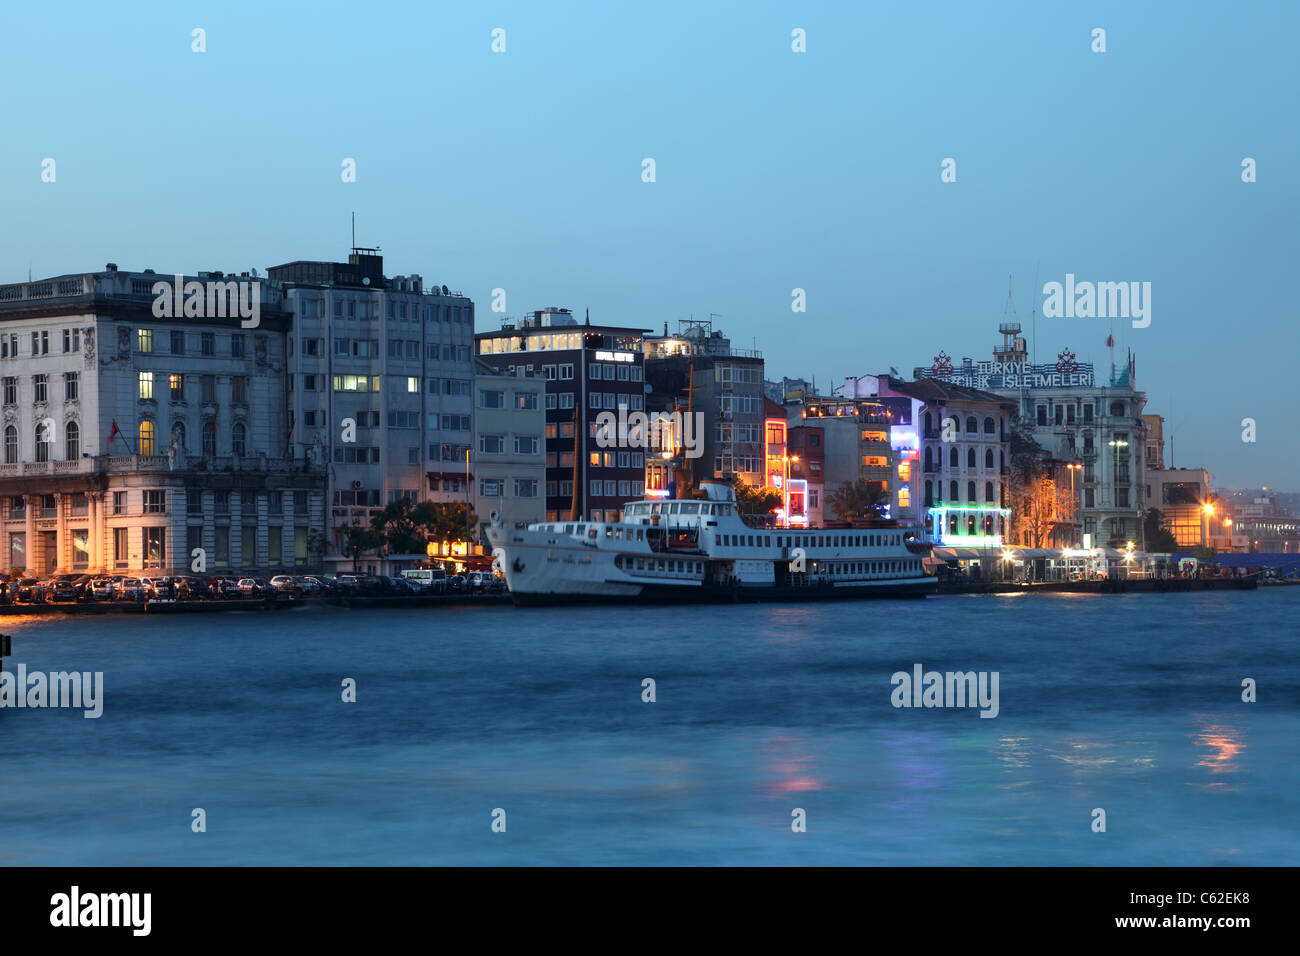 Waterside buildings at Golden Horn in Istanbul, Turkey - Stock Image